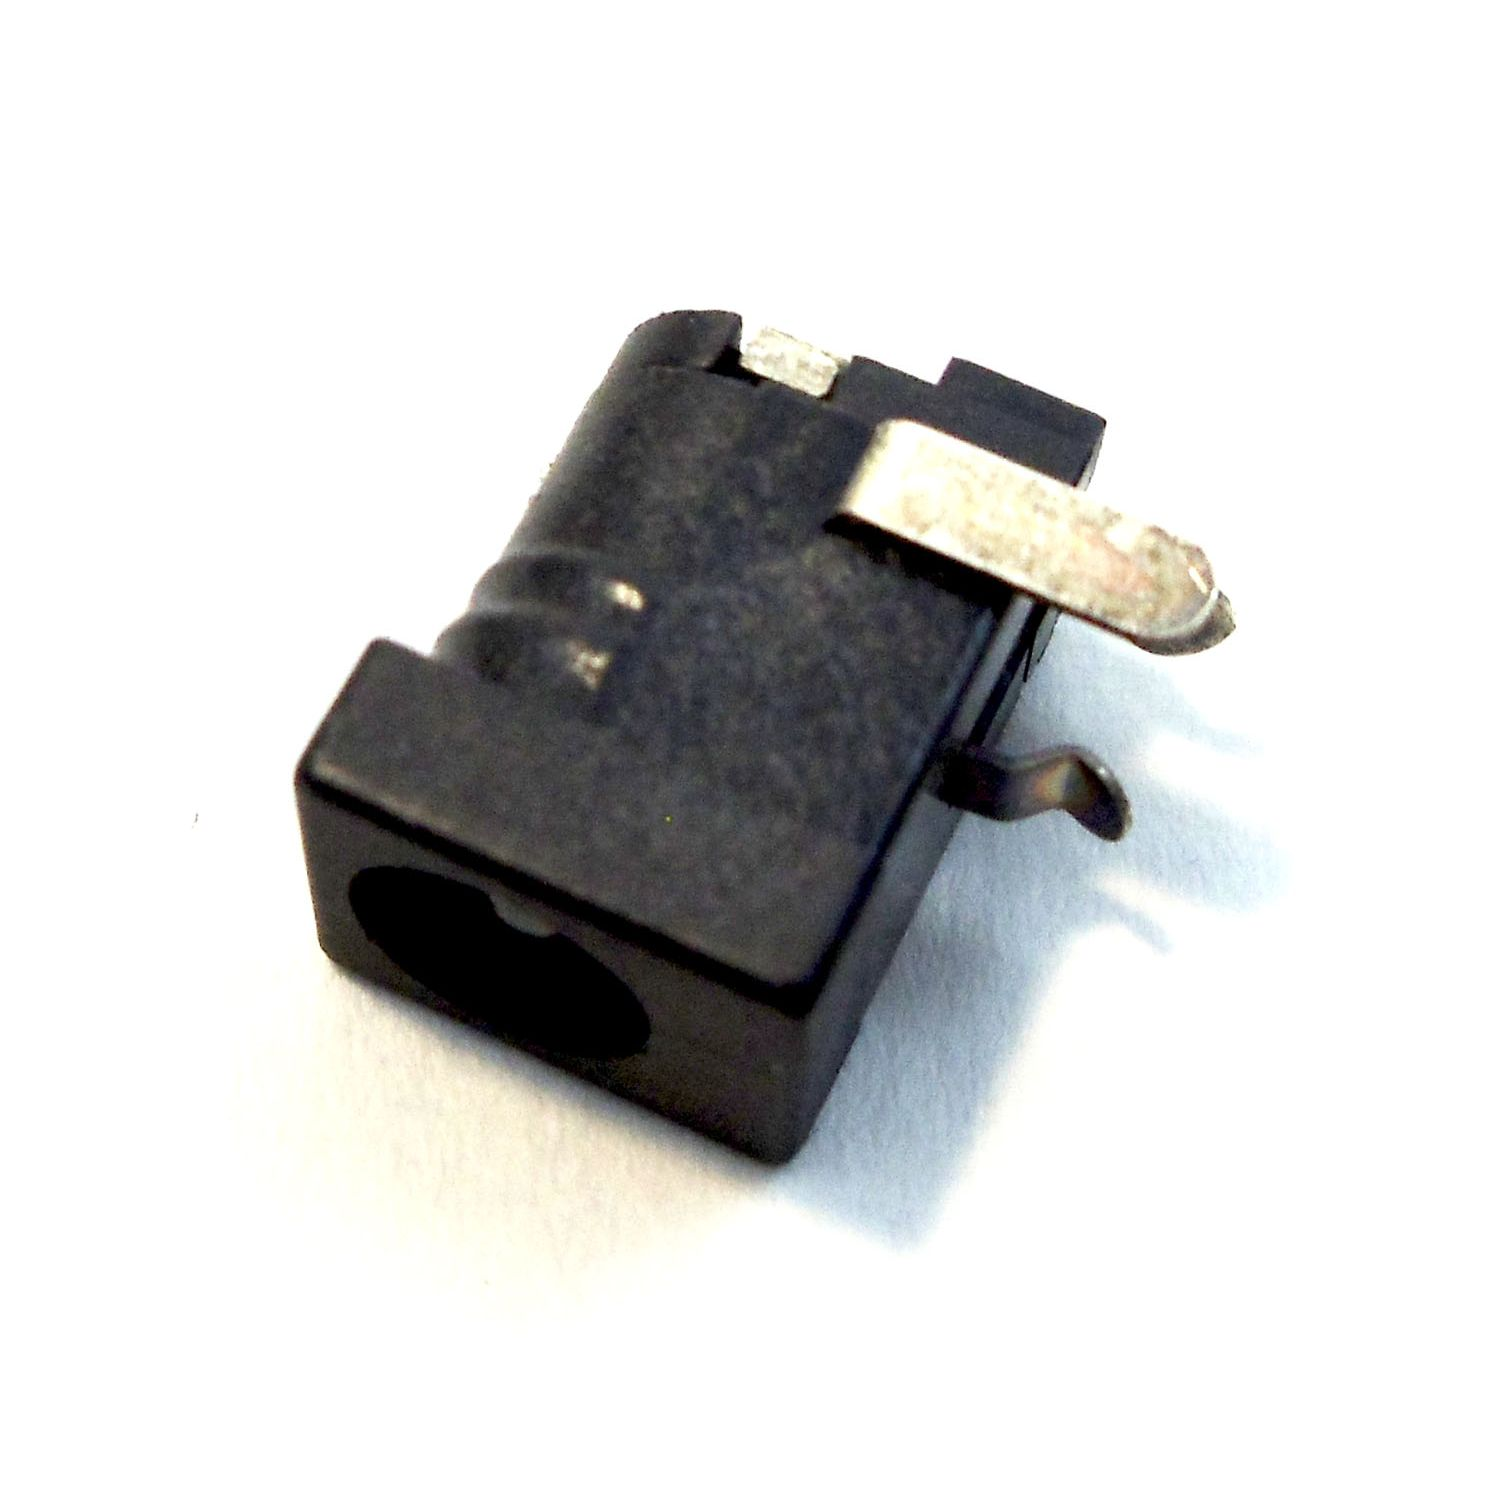 BJKY0790001 - Uniden Bearcat Replacement DC Plug For The BC60XLT Scanner